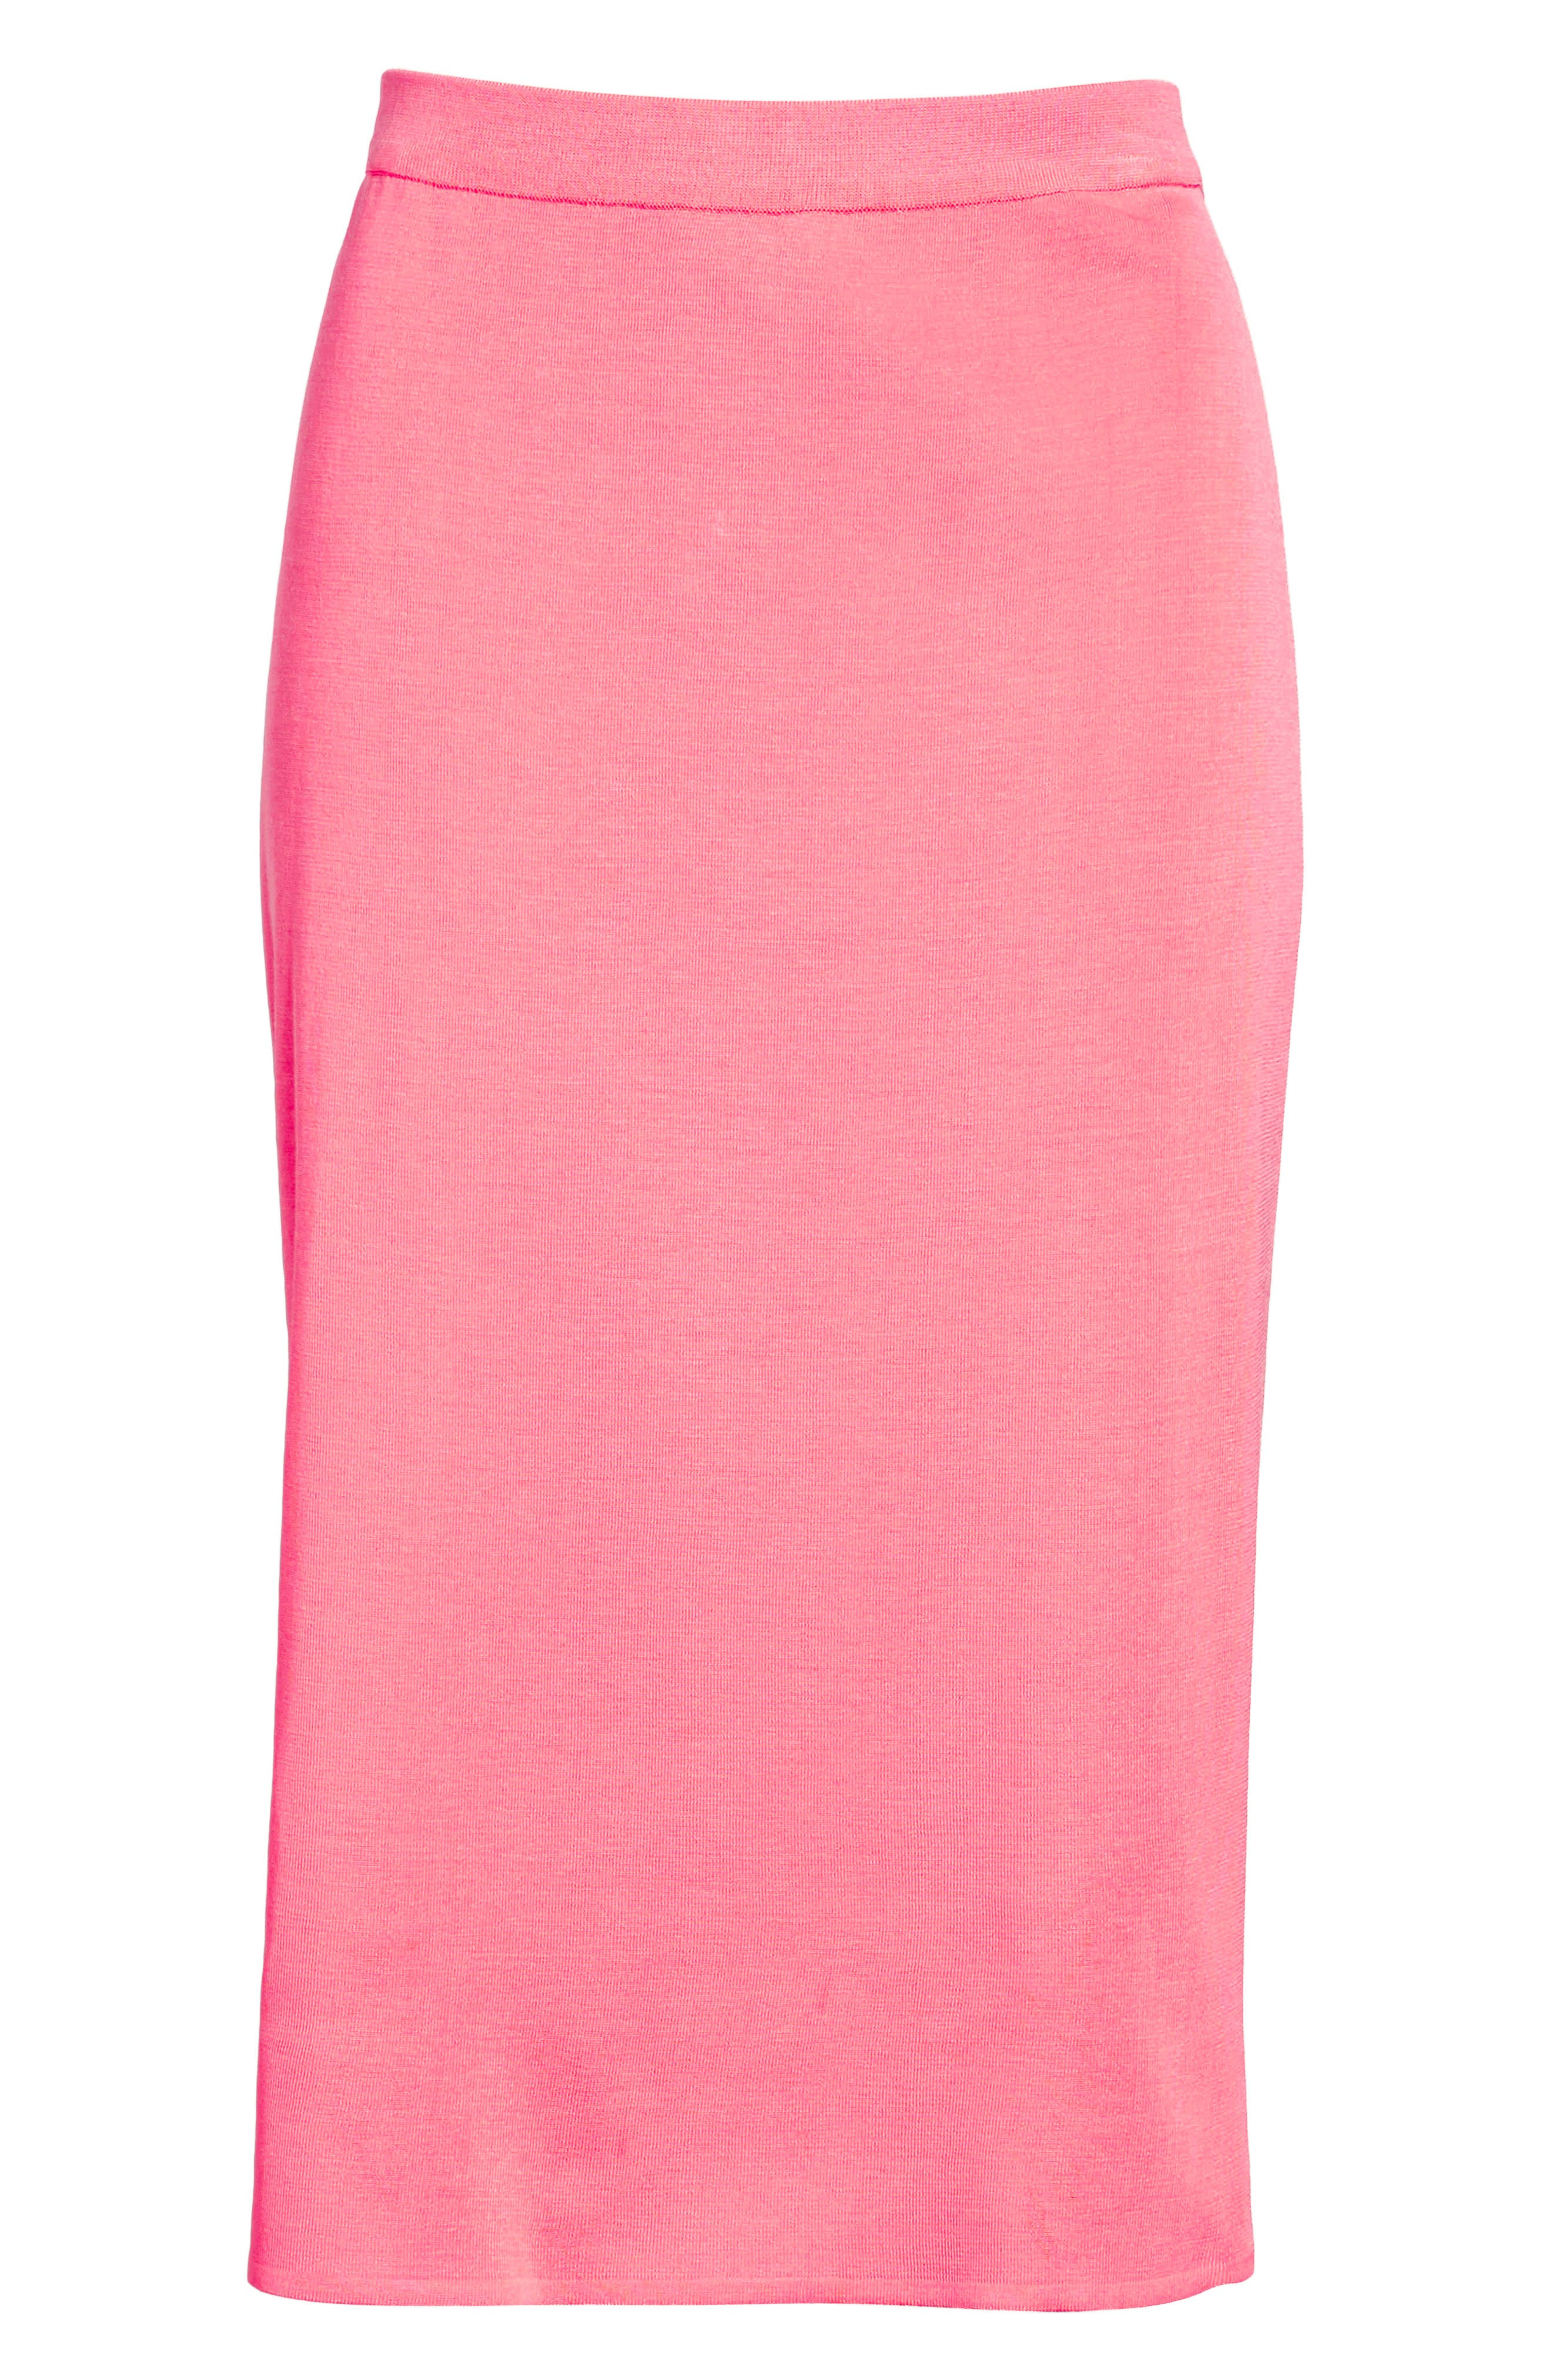 Straight Skirt,                             Alternate thumbnail 6, color,                             PINK LEMONADE